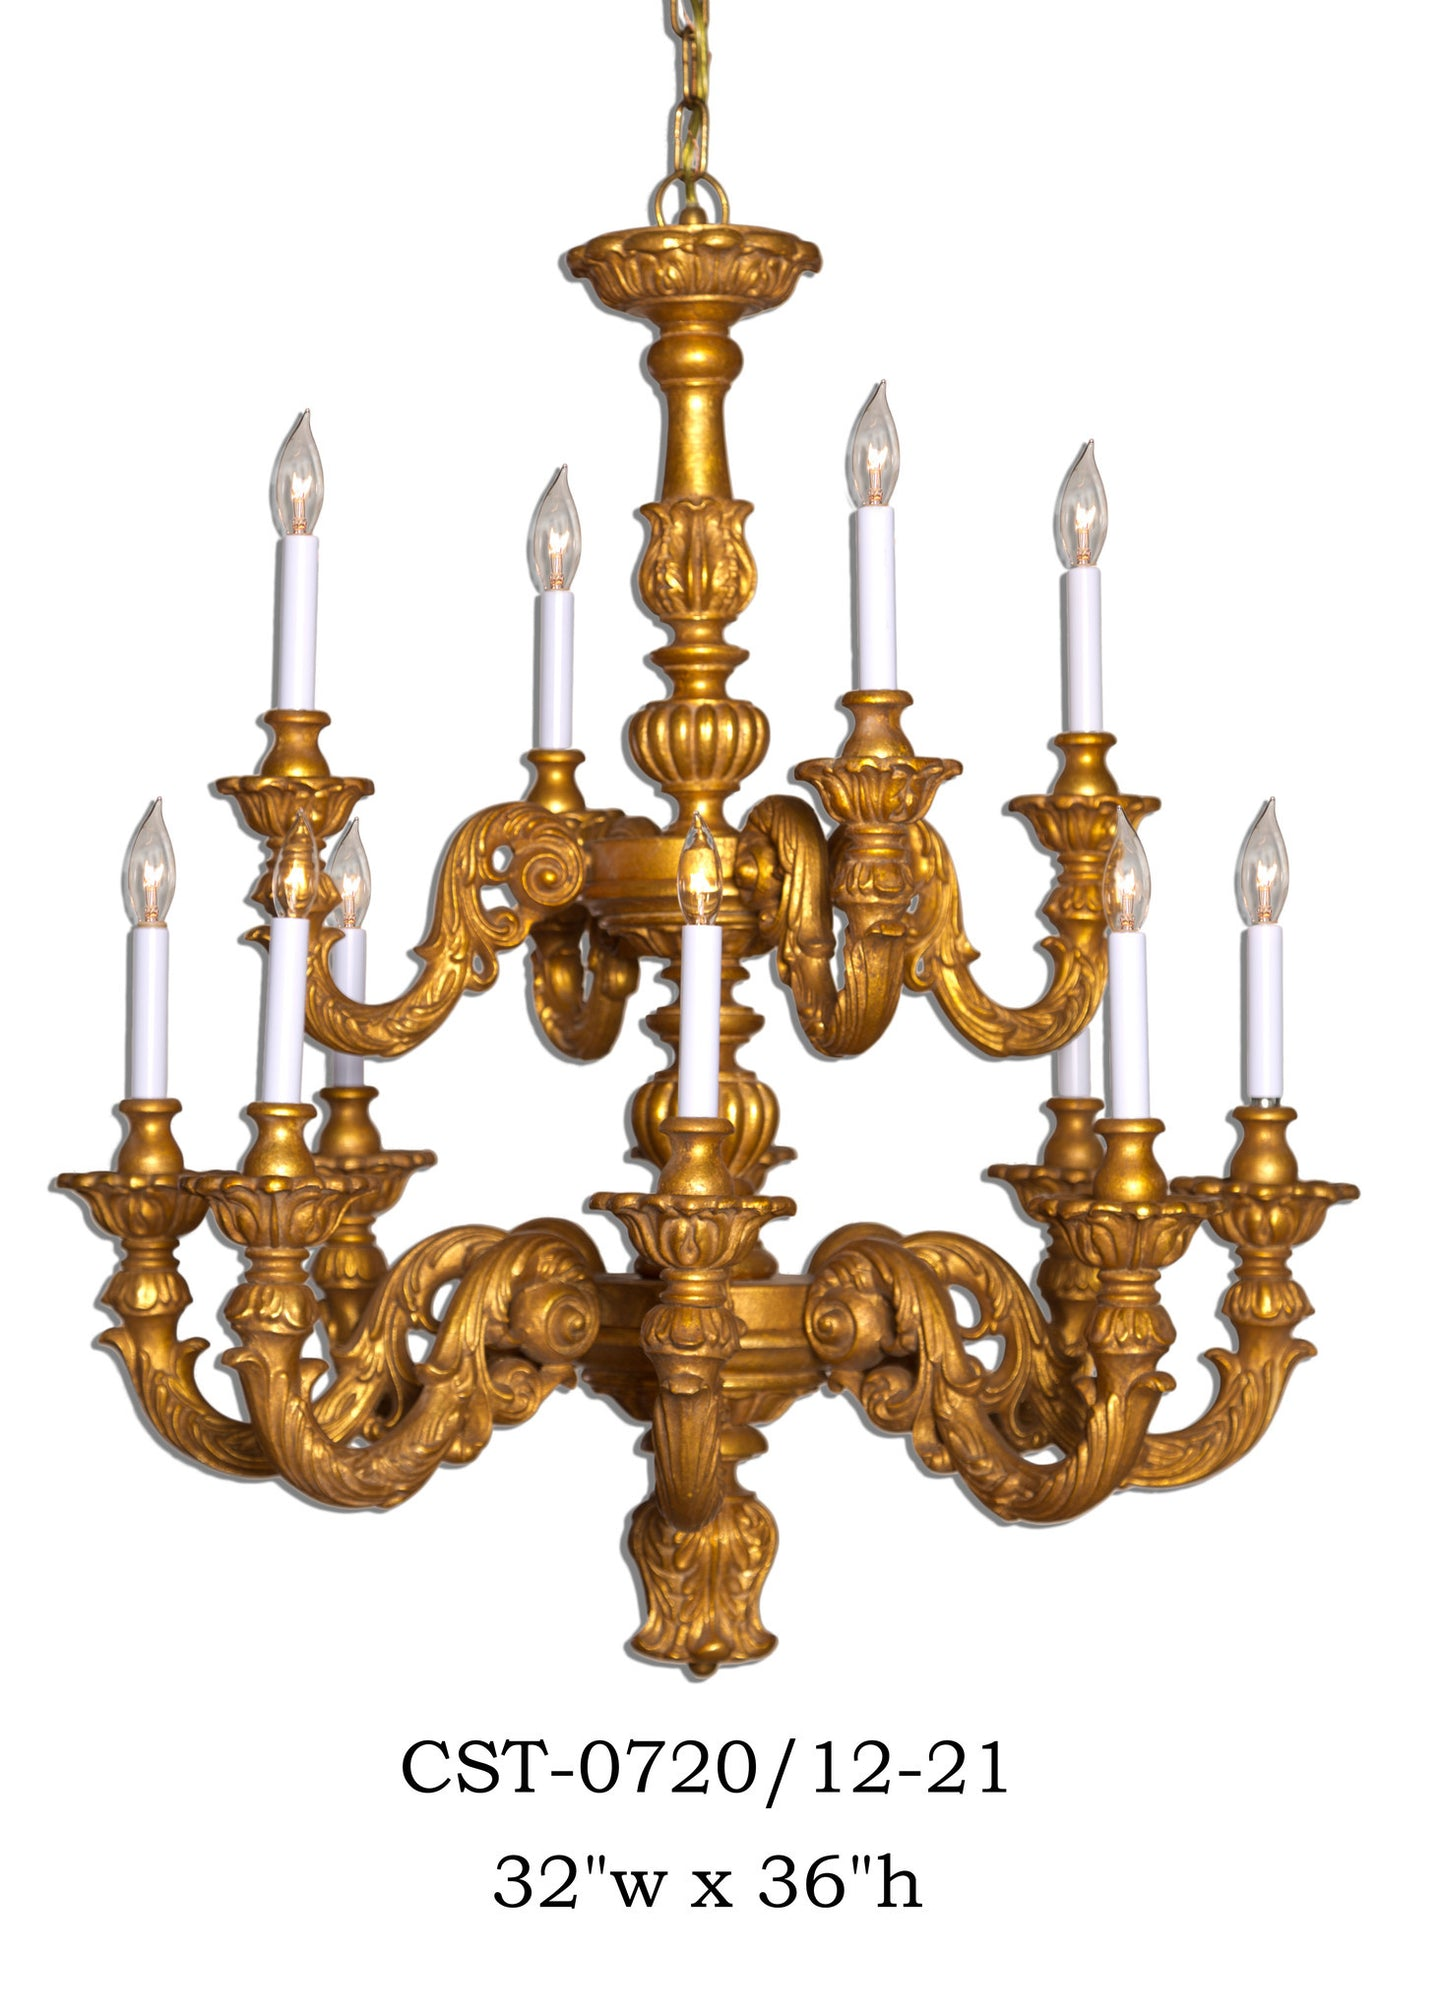 Wood Chandelier - CST-0720/12-21Chandelier - Graham's Lighting Memphis, TN